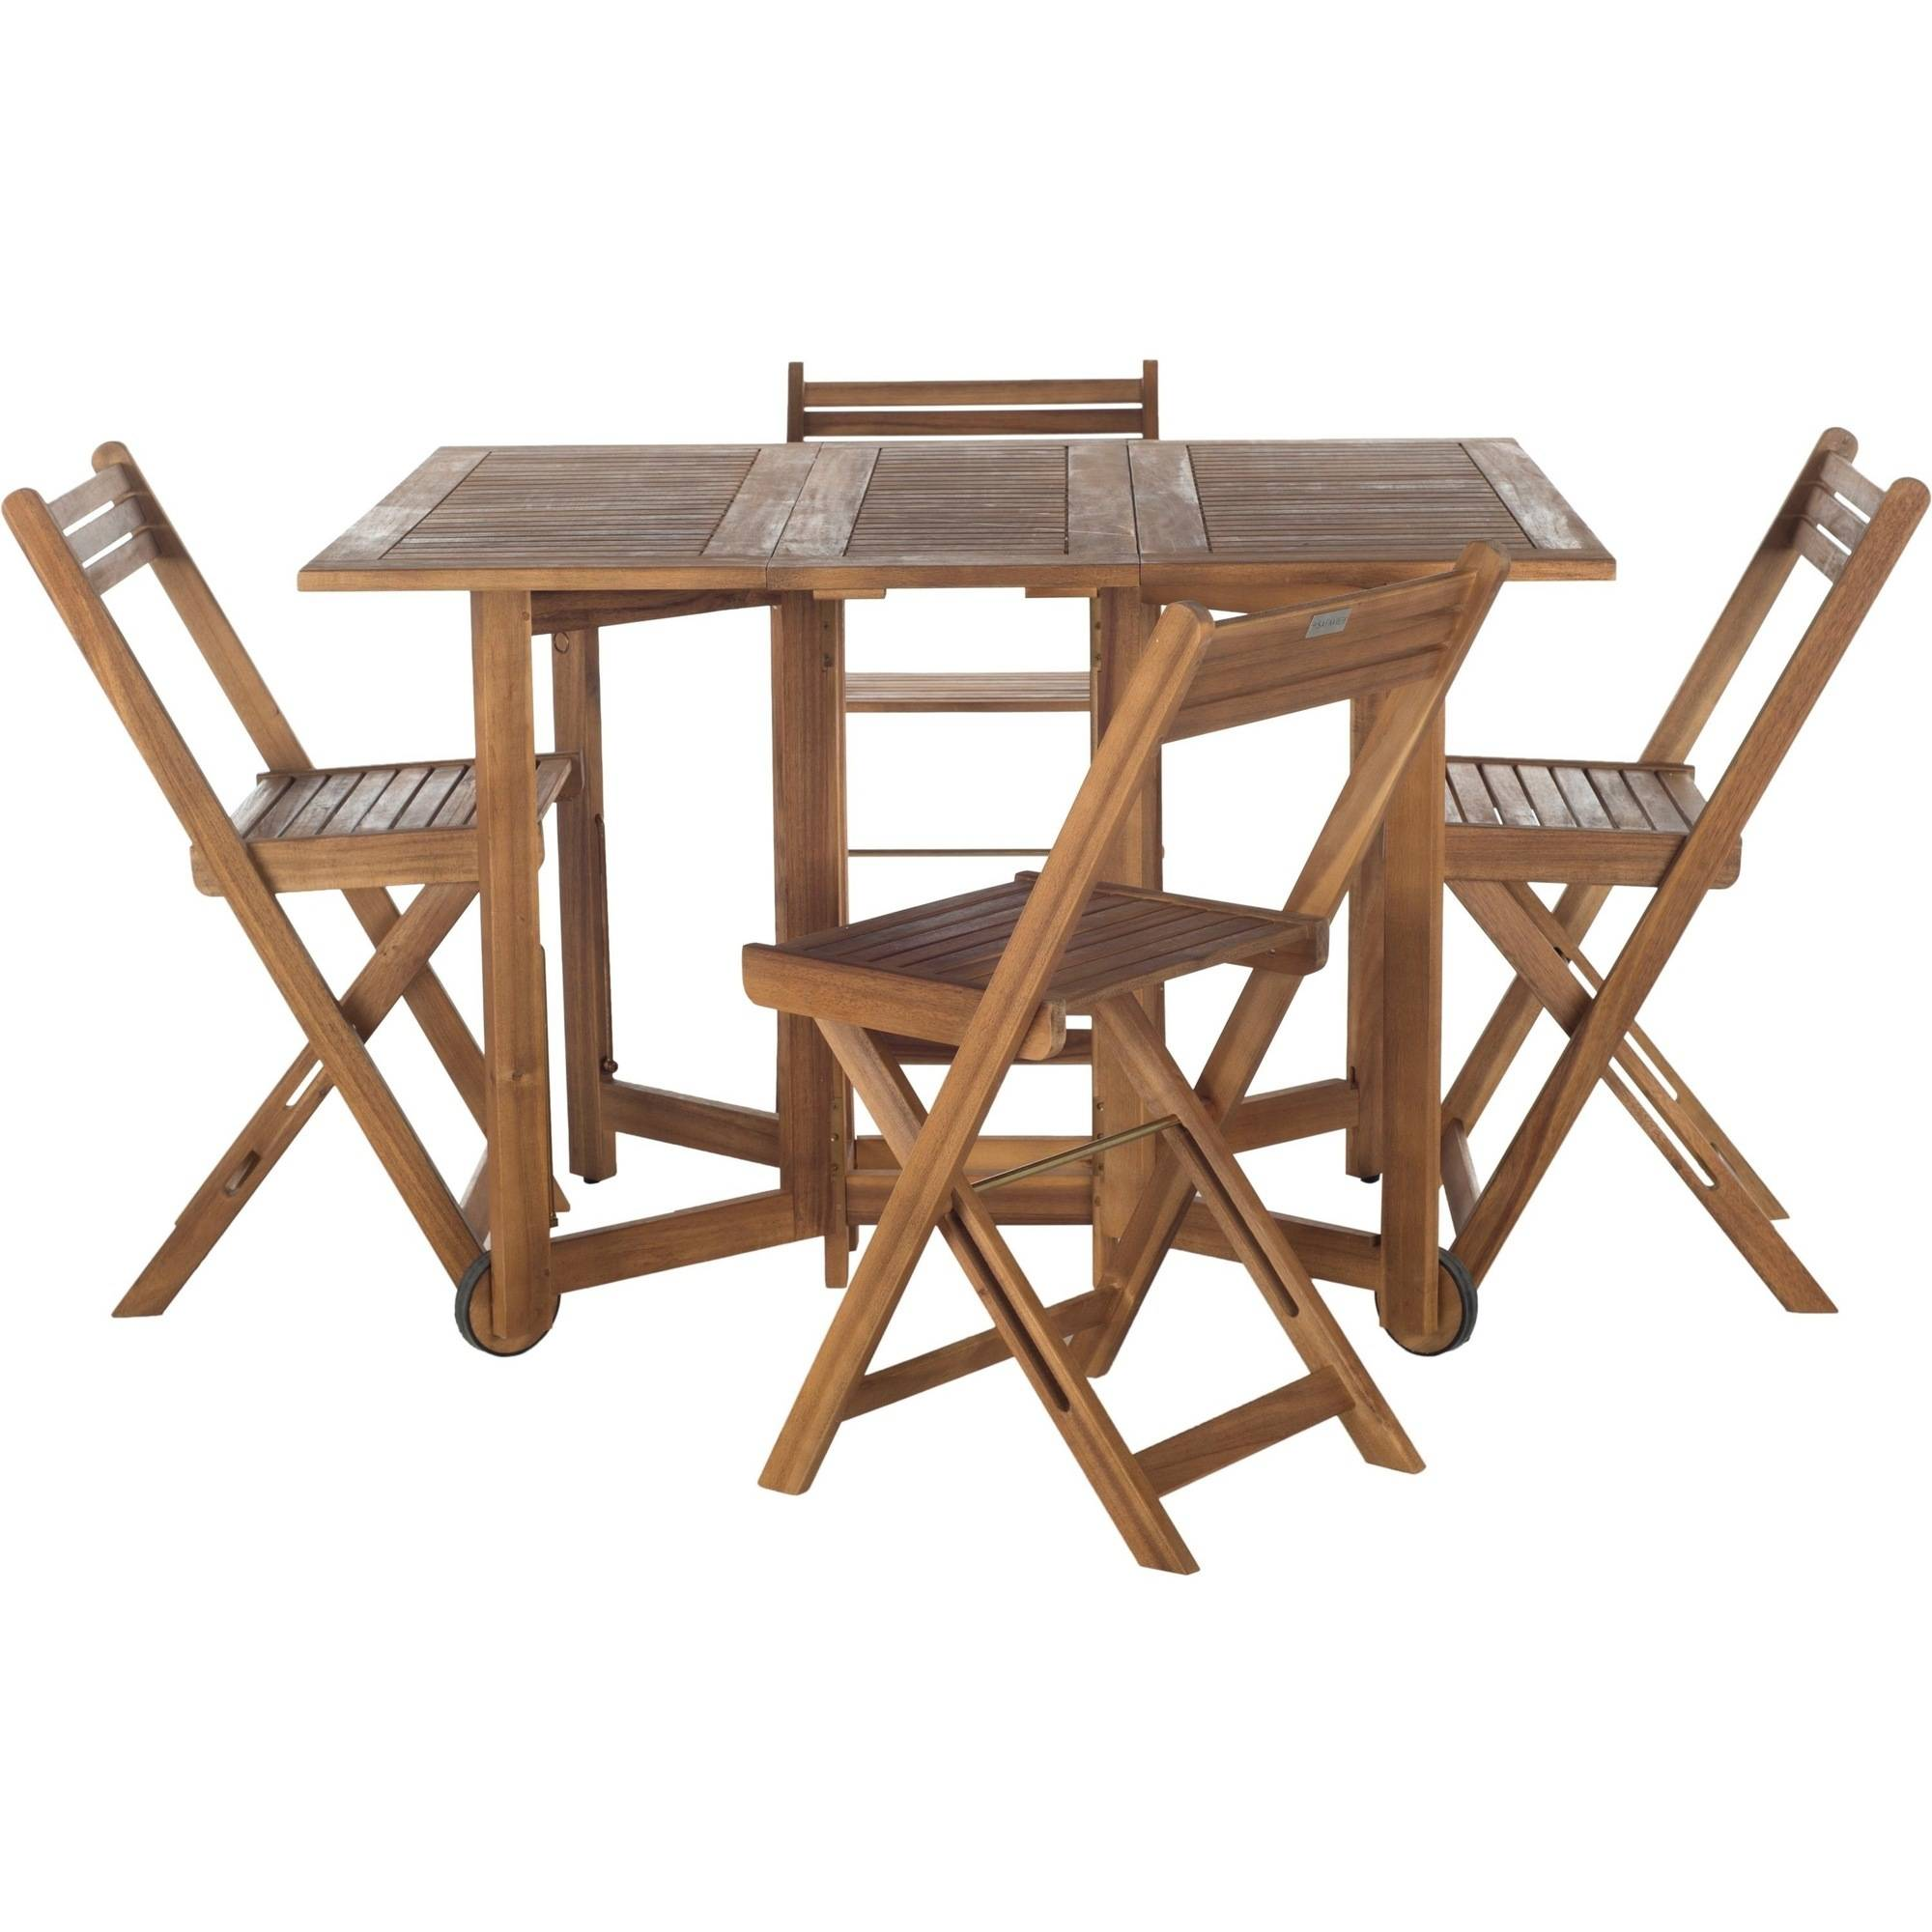 Safavieh Arvin Outdoor Table With 4 Chairs, Multiple Colors   Walmart.com